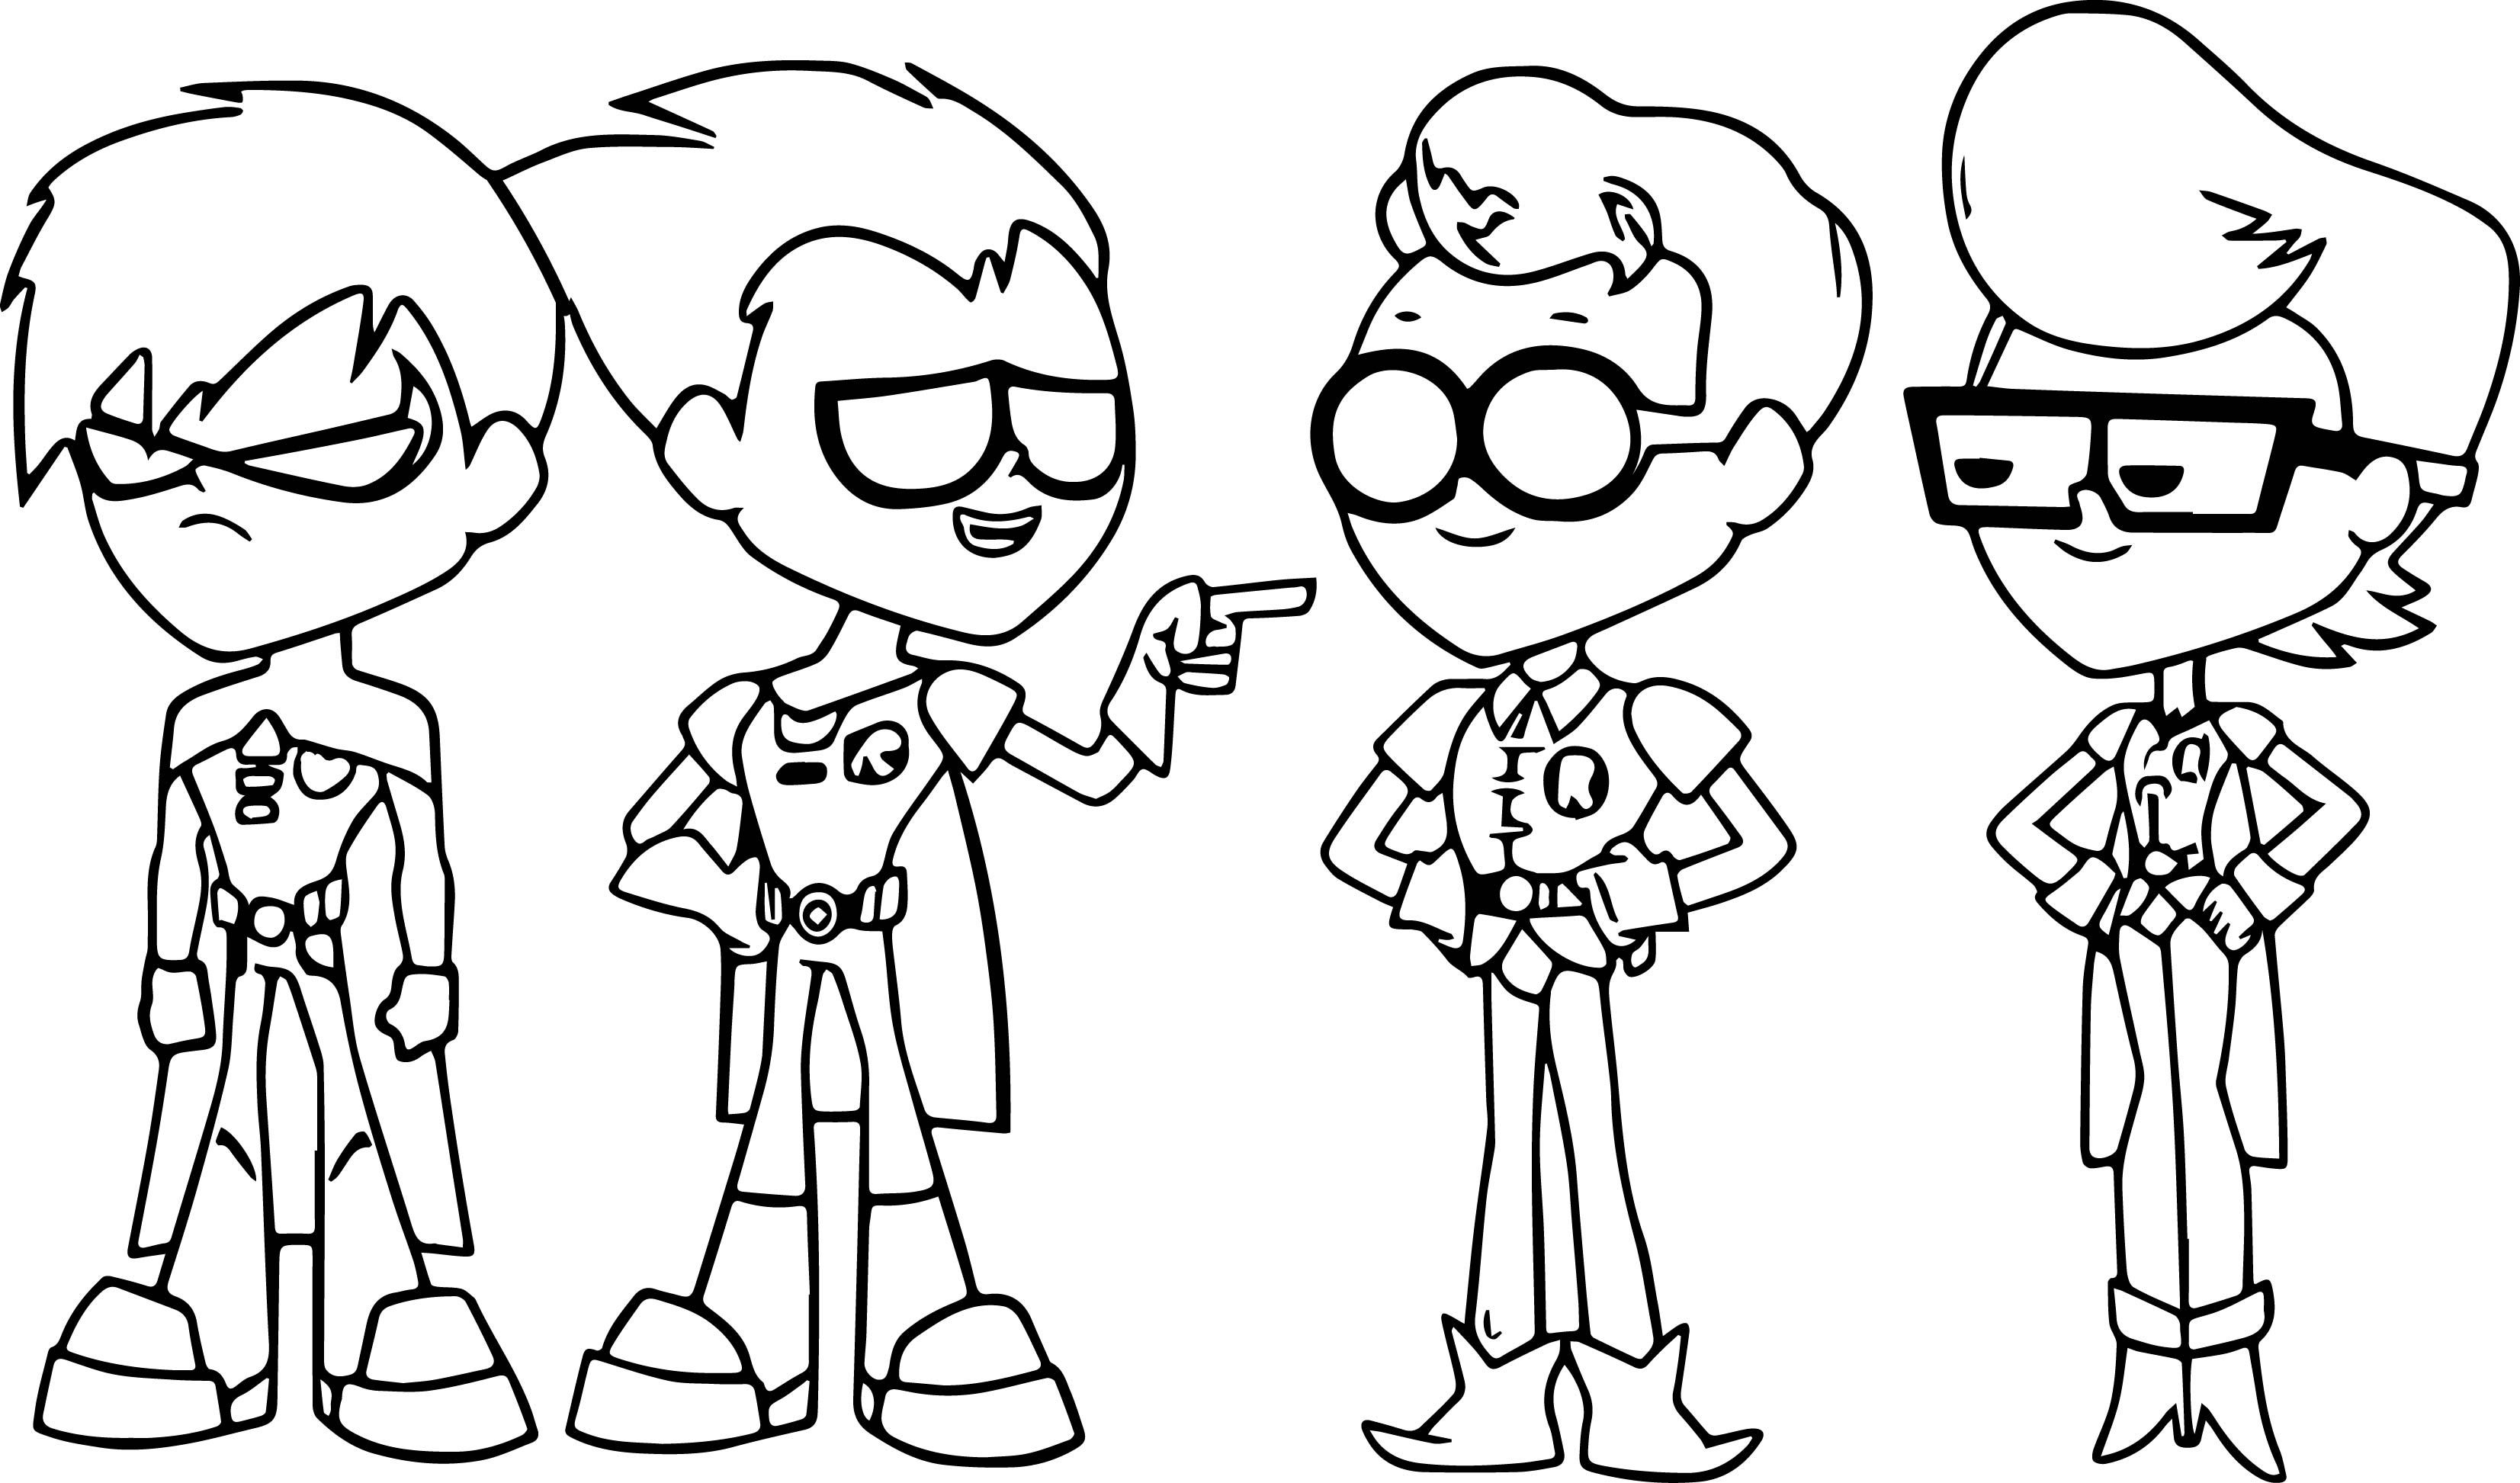 teen titans coloring team titans coloring pages at getdrawings free download teen titans coloring